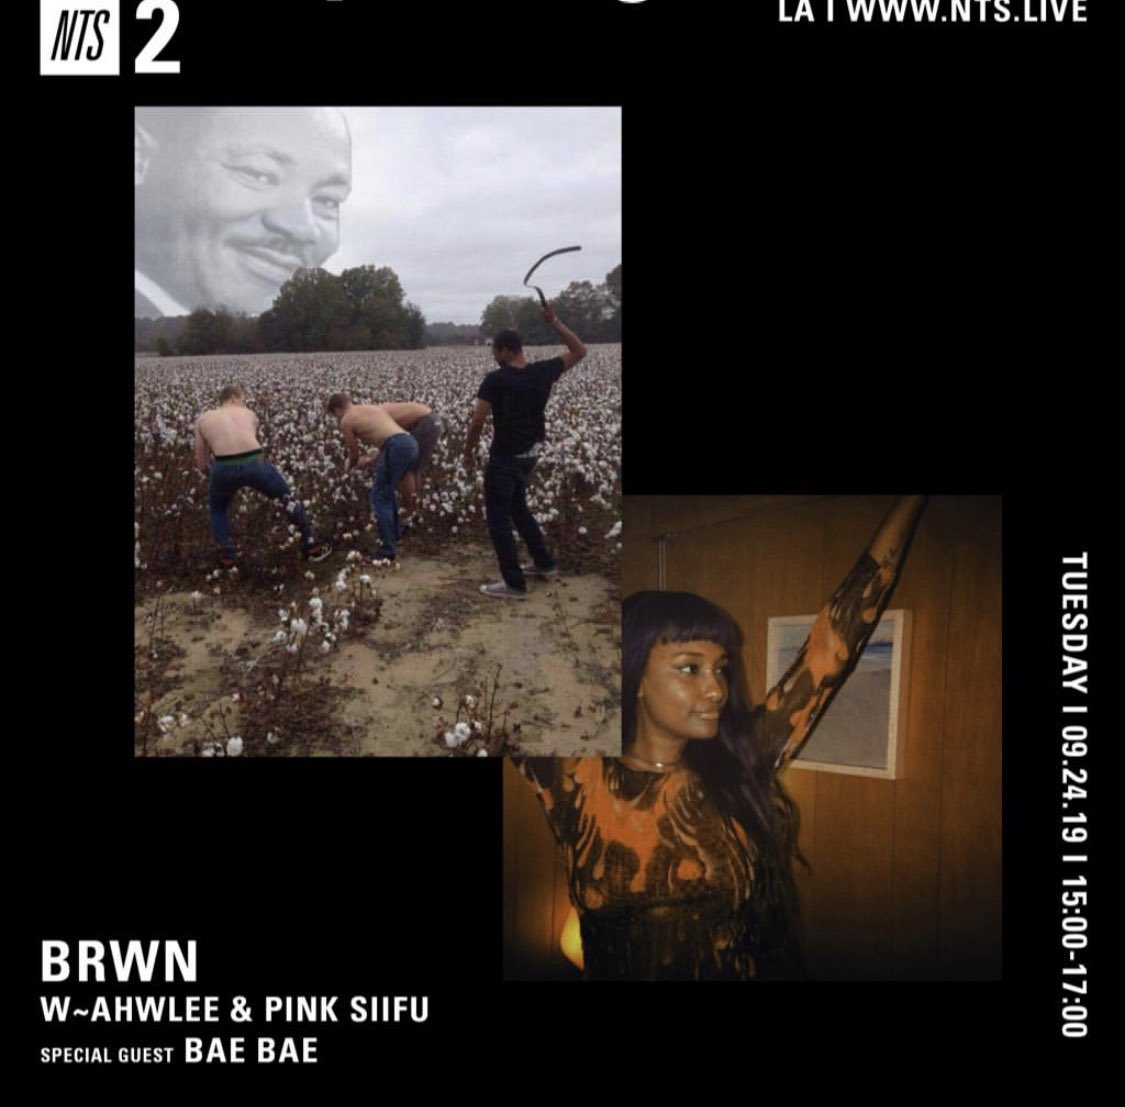 It's BRWN w/ @ahwlee & @PinkSiifu with special guest BAE BAE live in LA for the next hour and 45 minutes. Lock in here: nts.live/2